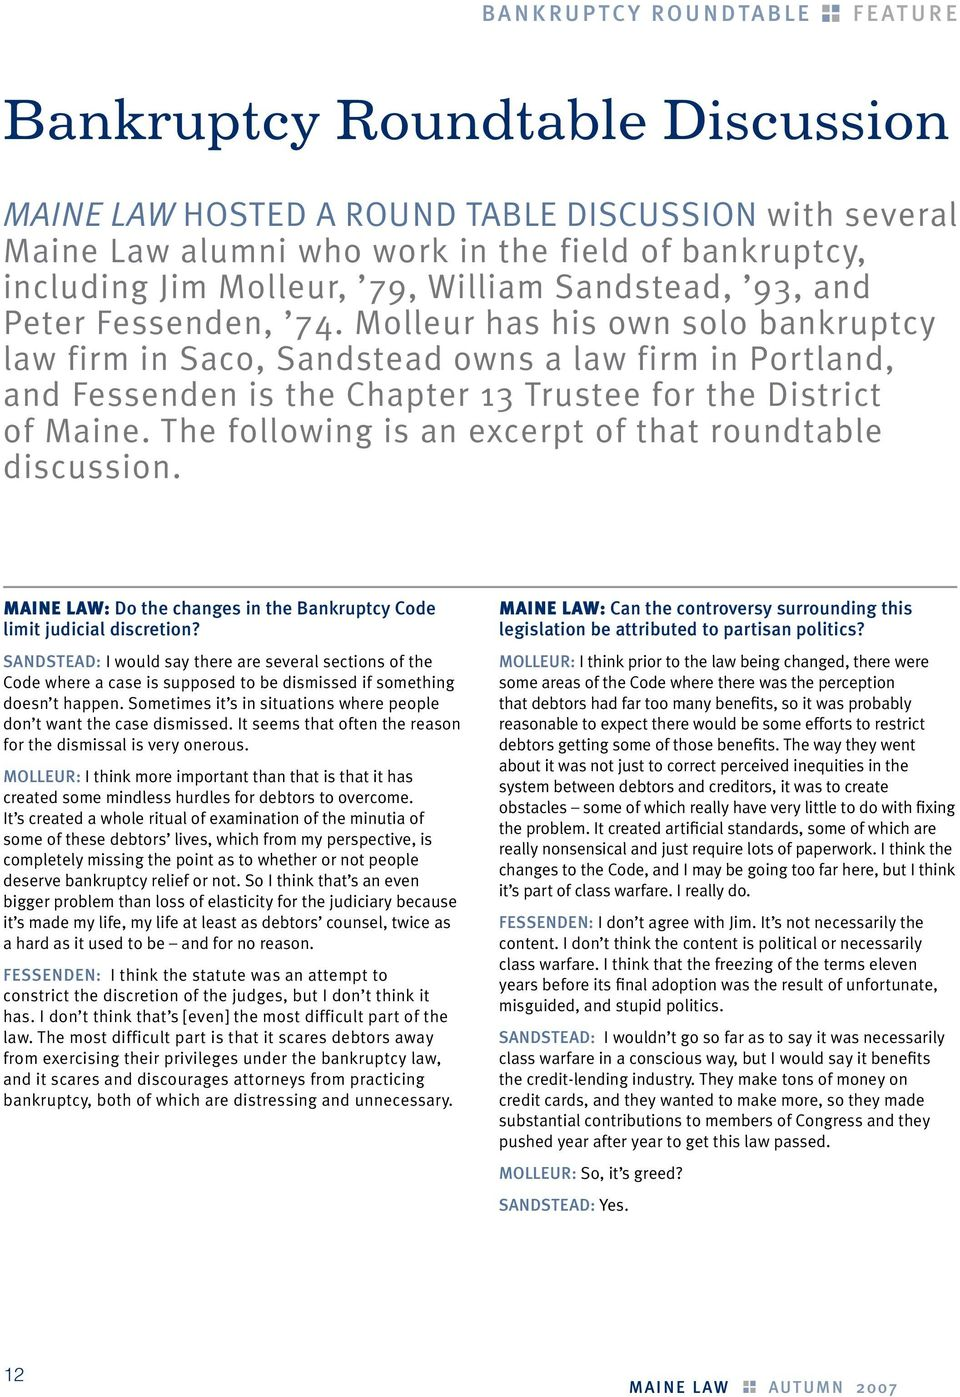 Molleur has his own solo bankruptcy law firm in Saco, Sandstead owns a law firm in Portland, and Fessenden is the Chapter 13 Trustee for the District of Maine.